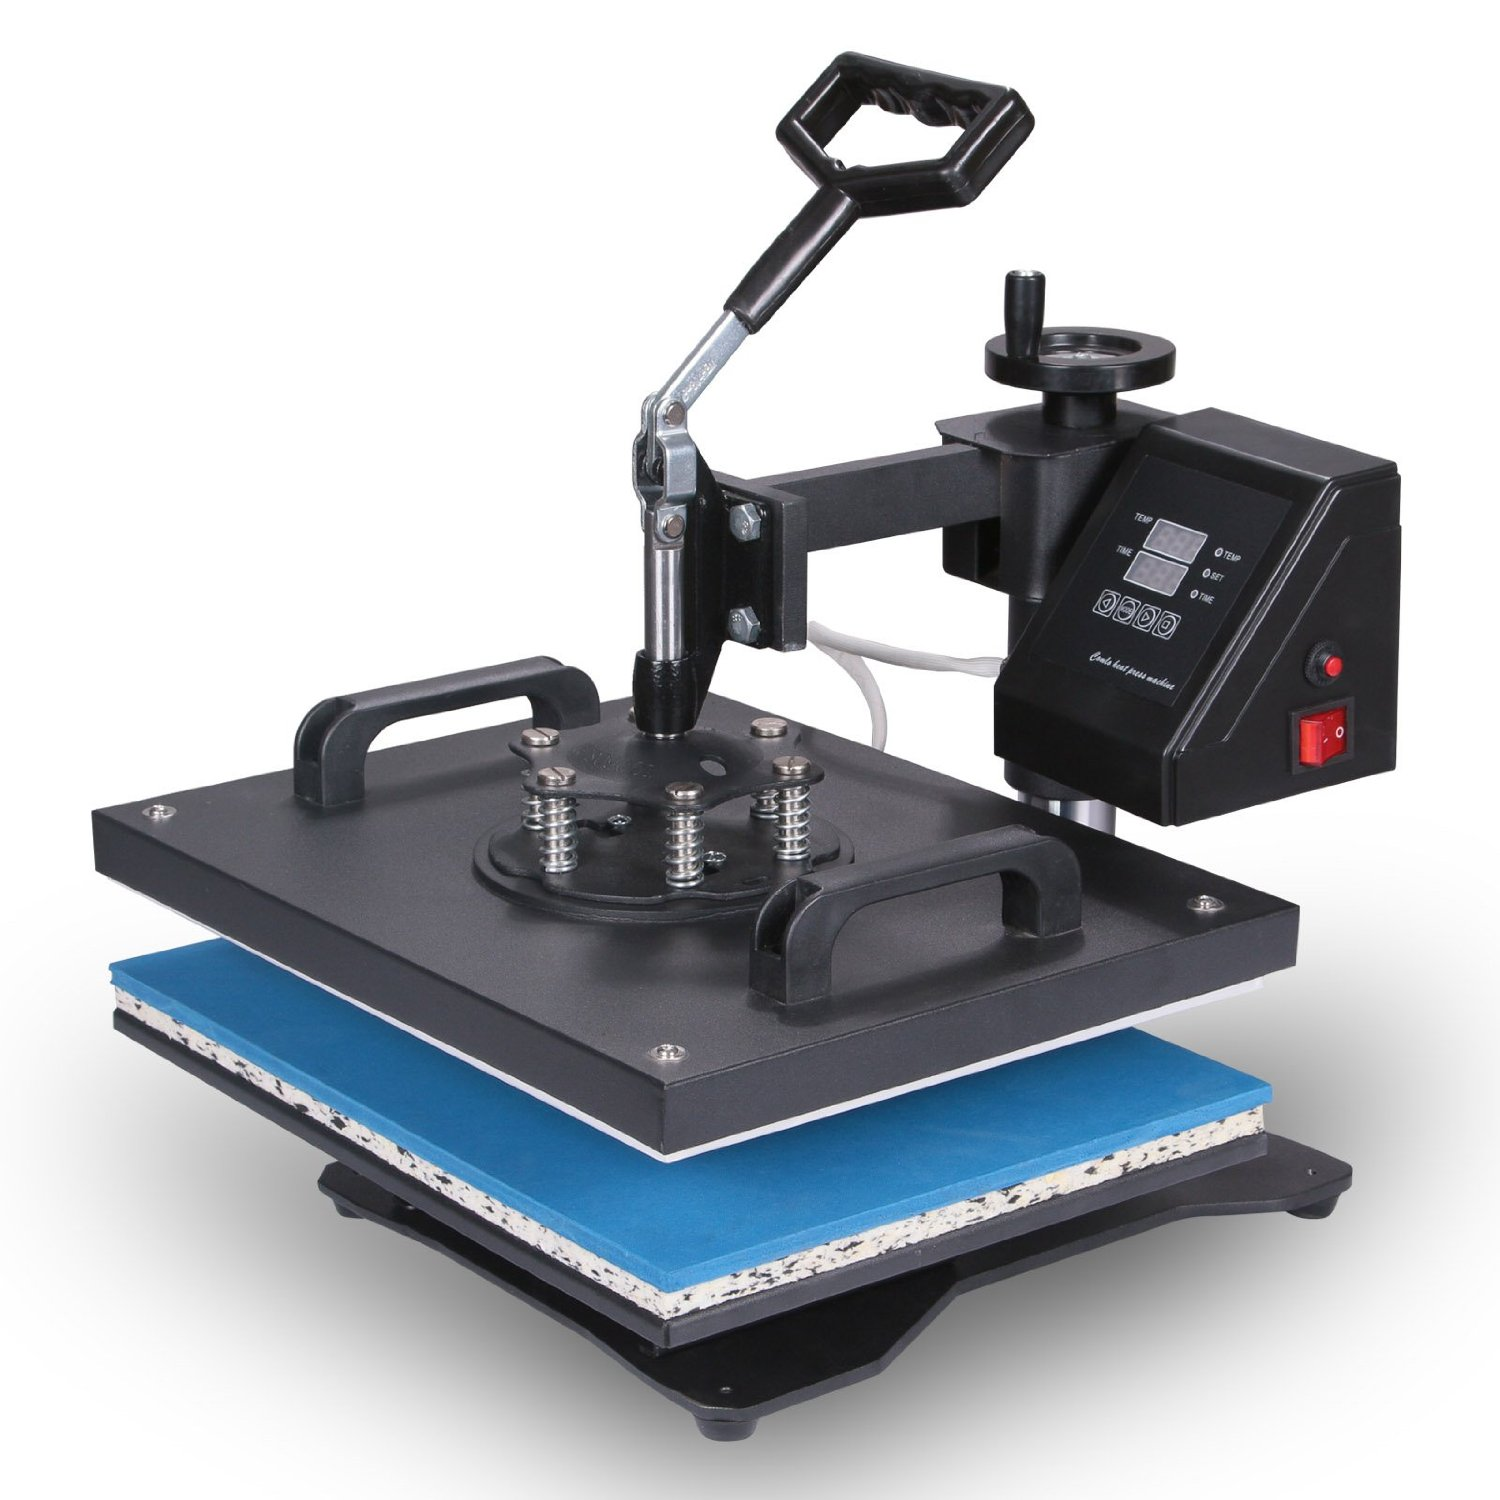 mophorn 5 in 1 heat press review